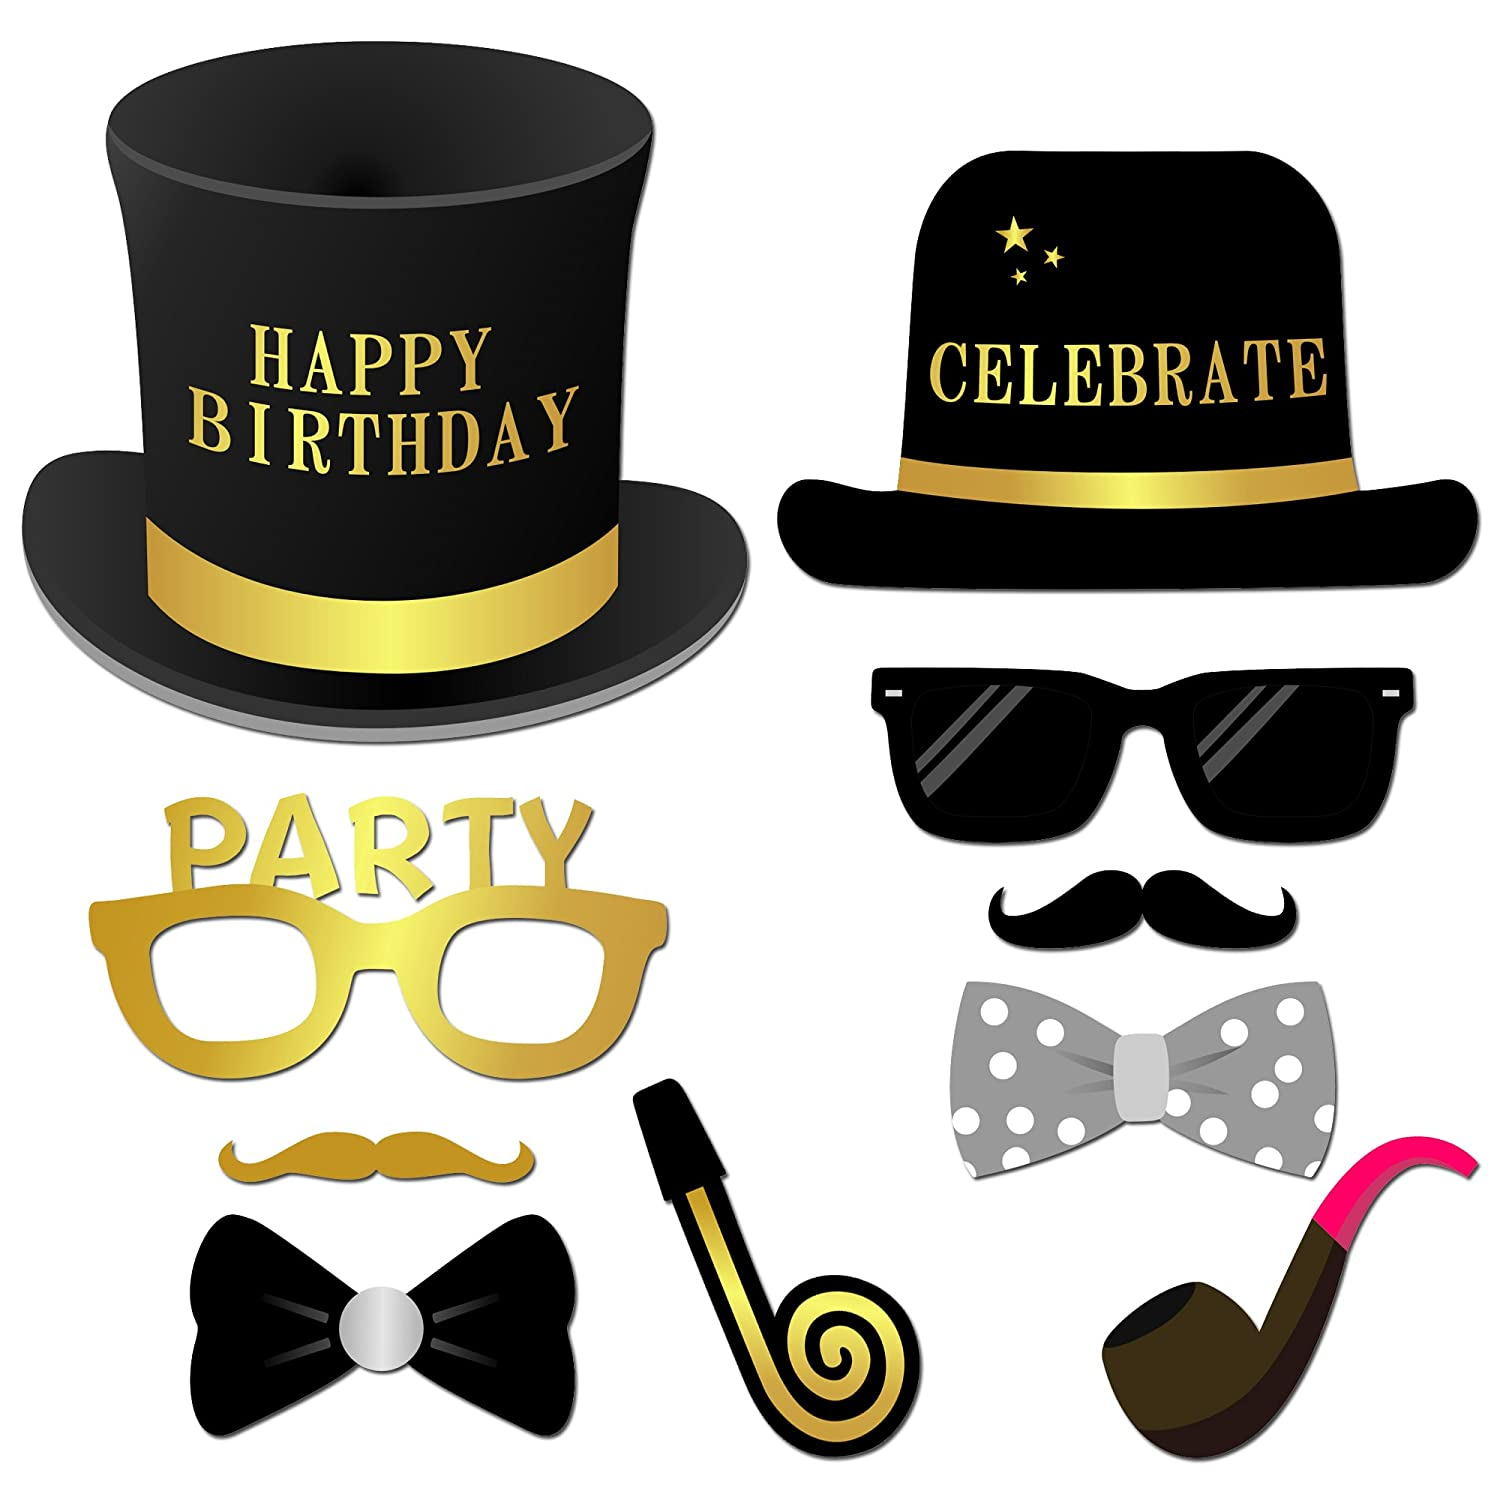 Amazon.com: Happy Birthday Party Photo Booth Props con palo ...